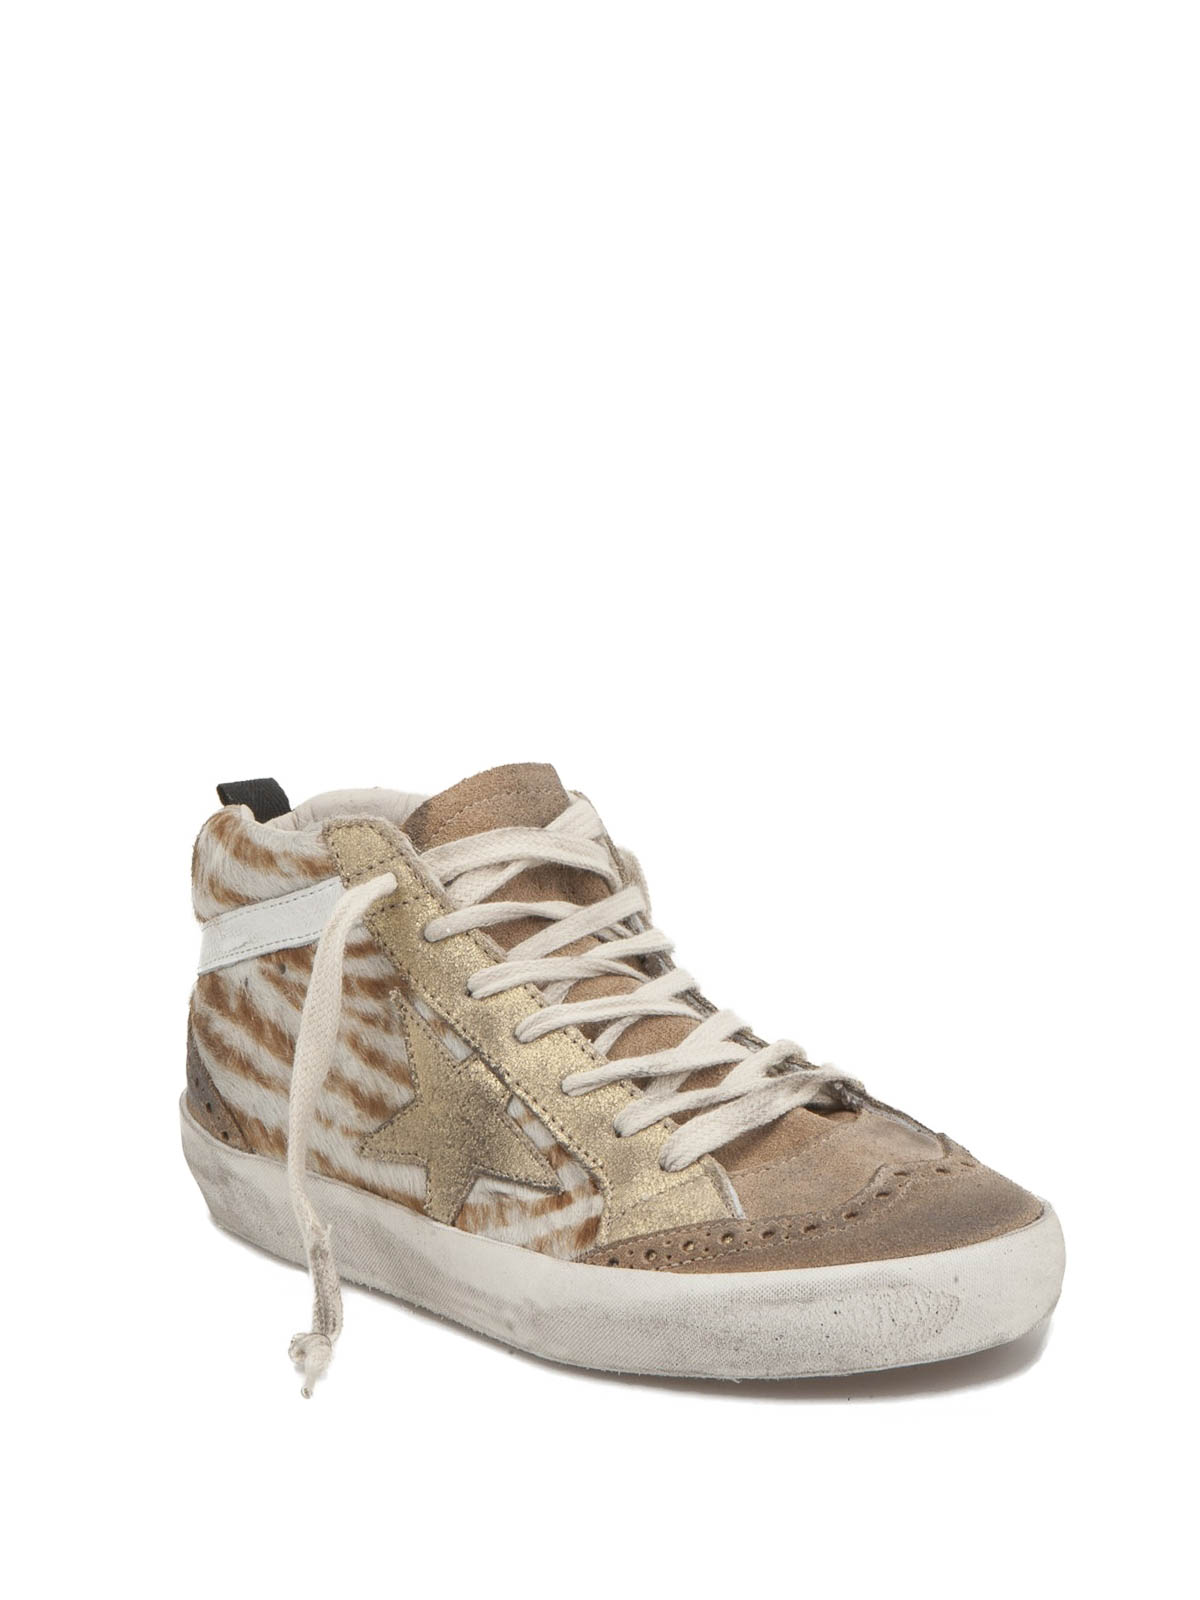 Clearance Cheap Online Clearance Free Shipping Zebra Mid Star sneakers Golden Goose 11O3lP3